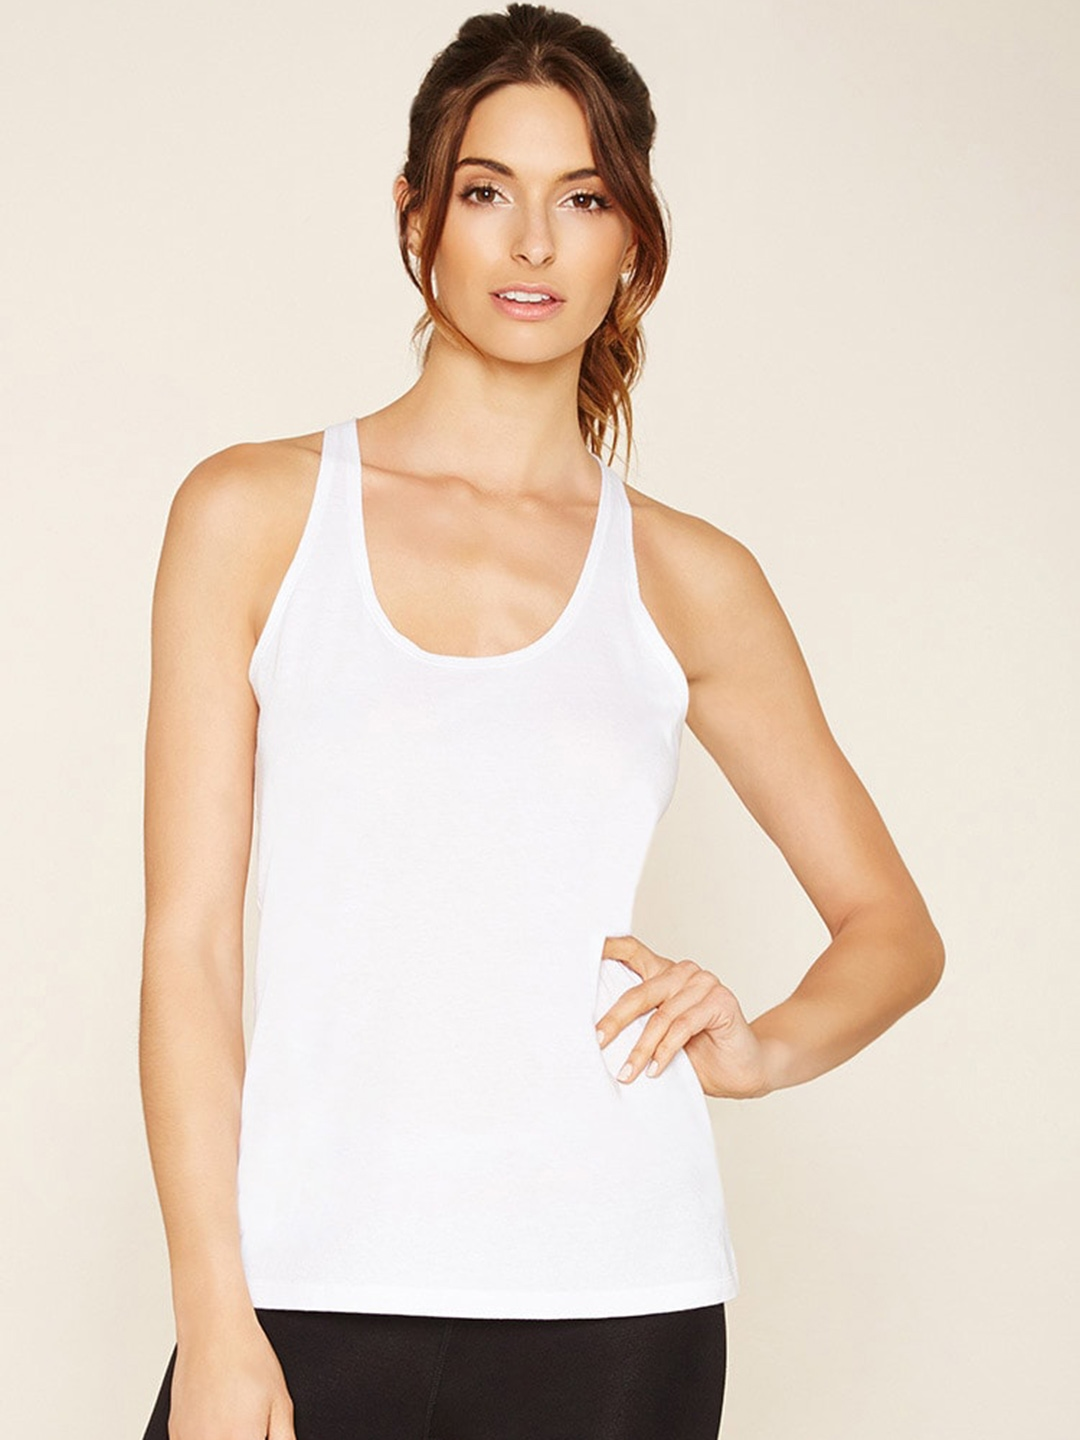 a09da7234fa67 Buy FOREVER 21 Women White Tank Top - Tops for Women 1450871 | Myntra